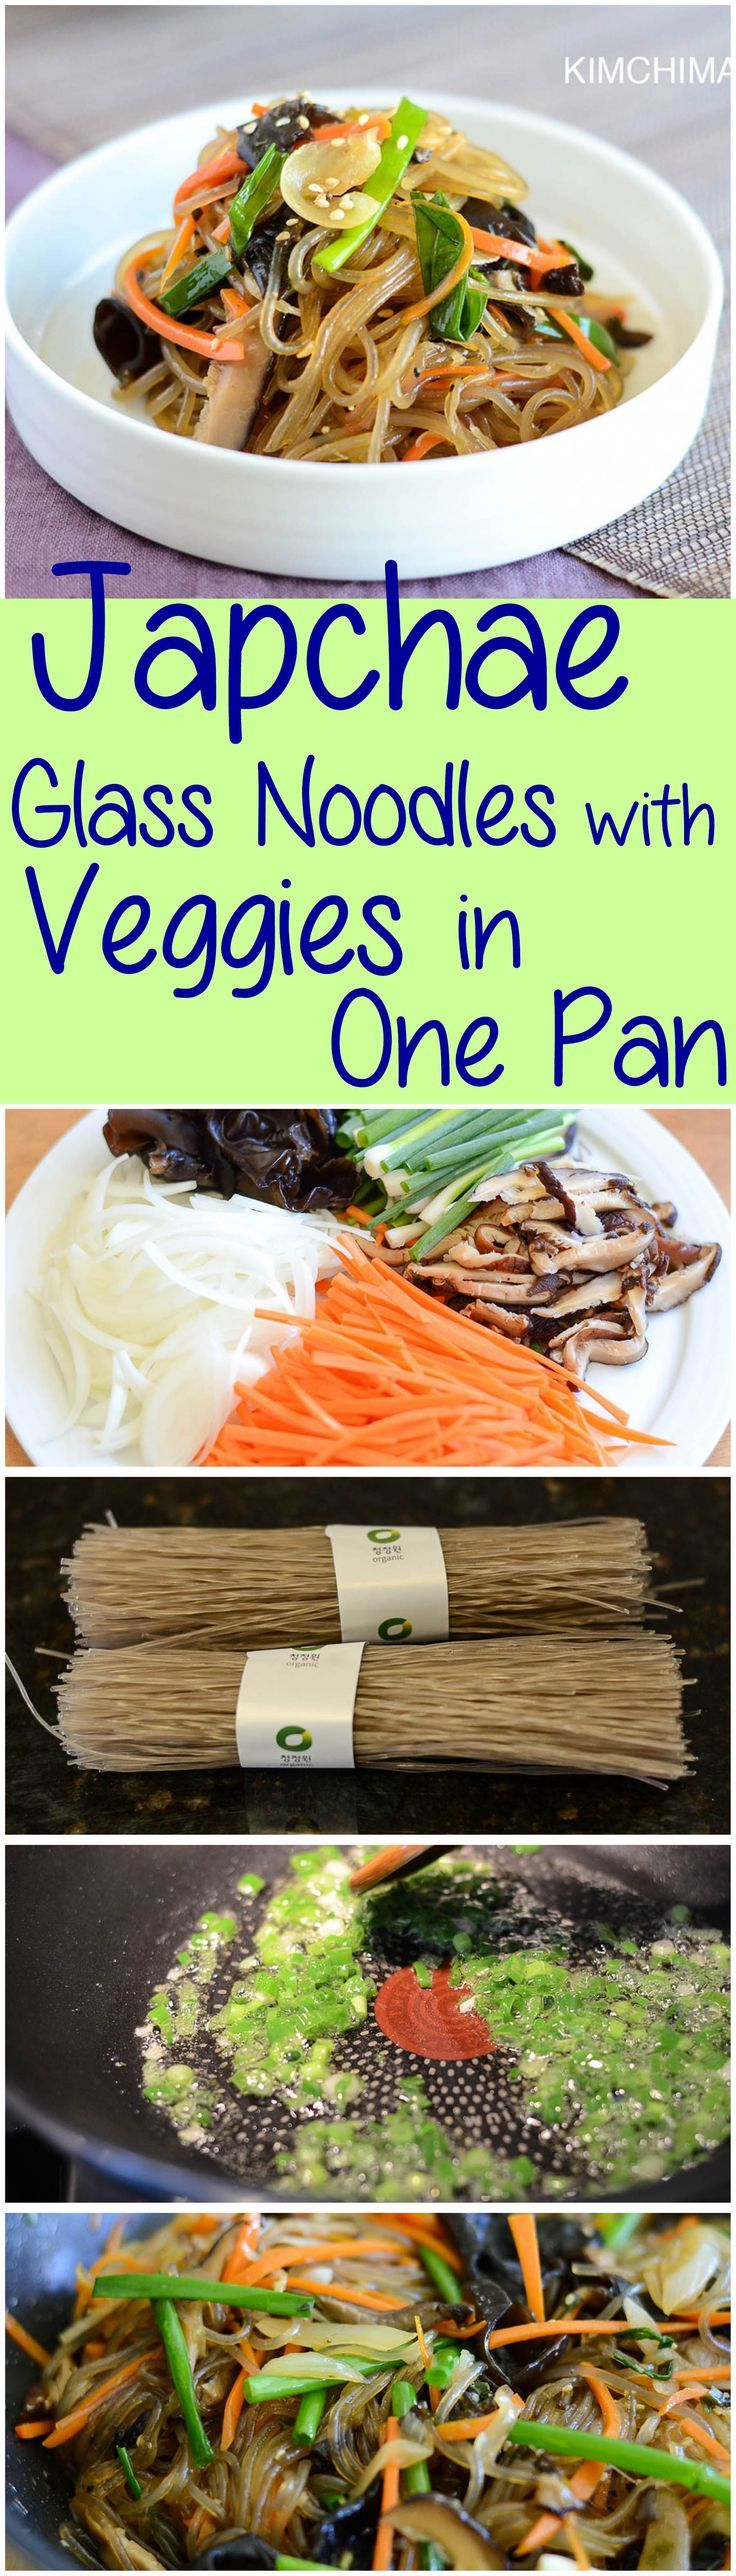 127 best korean cuisine images on pinterest korean cuisine korean one pan korean japchae simply made with glass noodles mushrooms and veggies delicious and healthy it is a meal on its own forumfinder Image collections